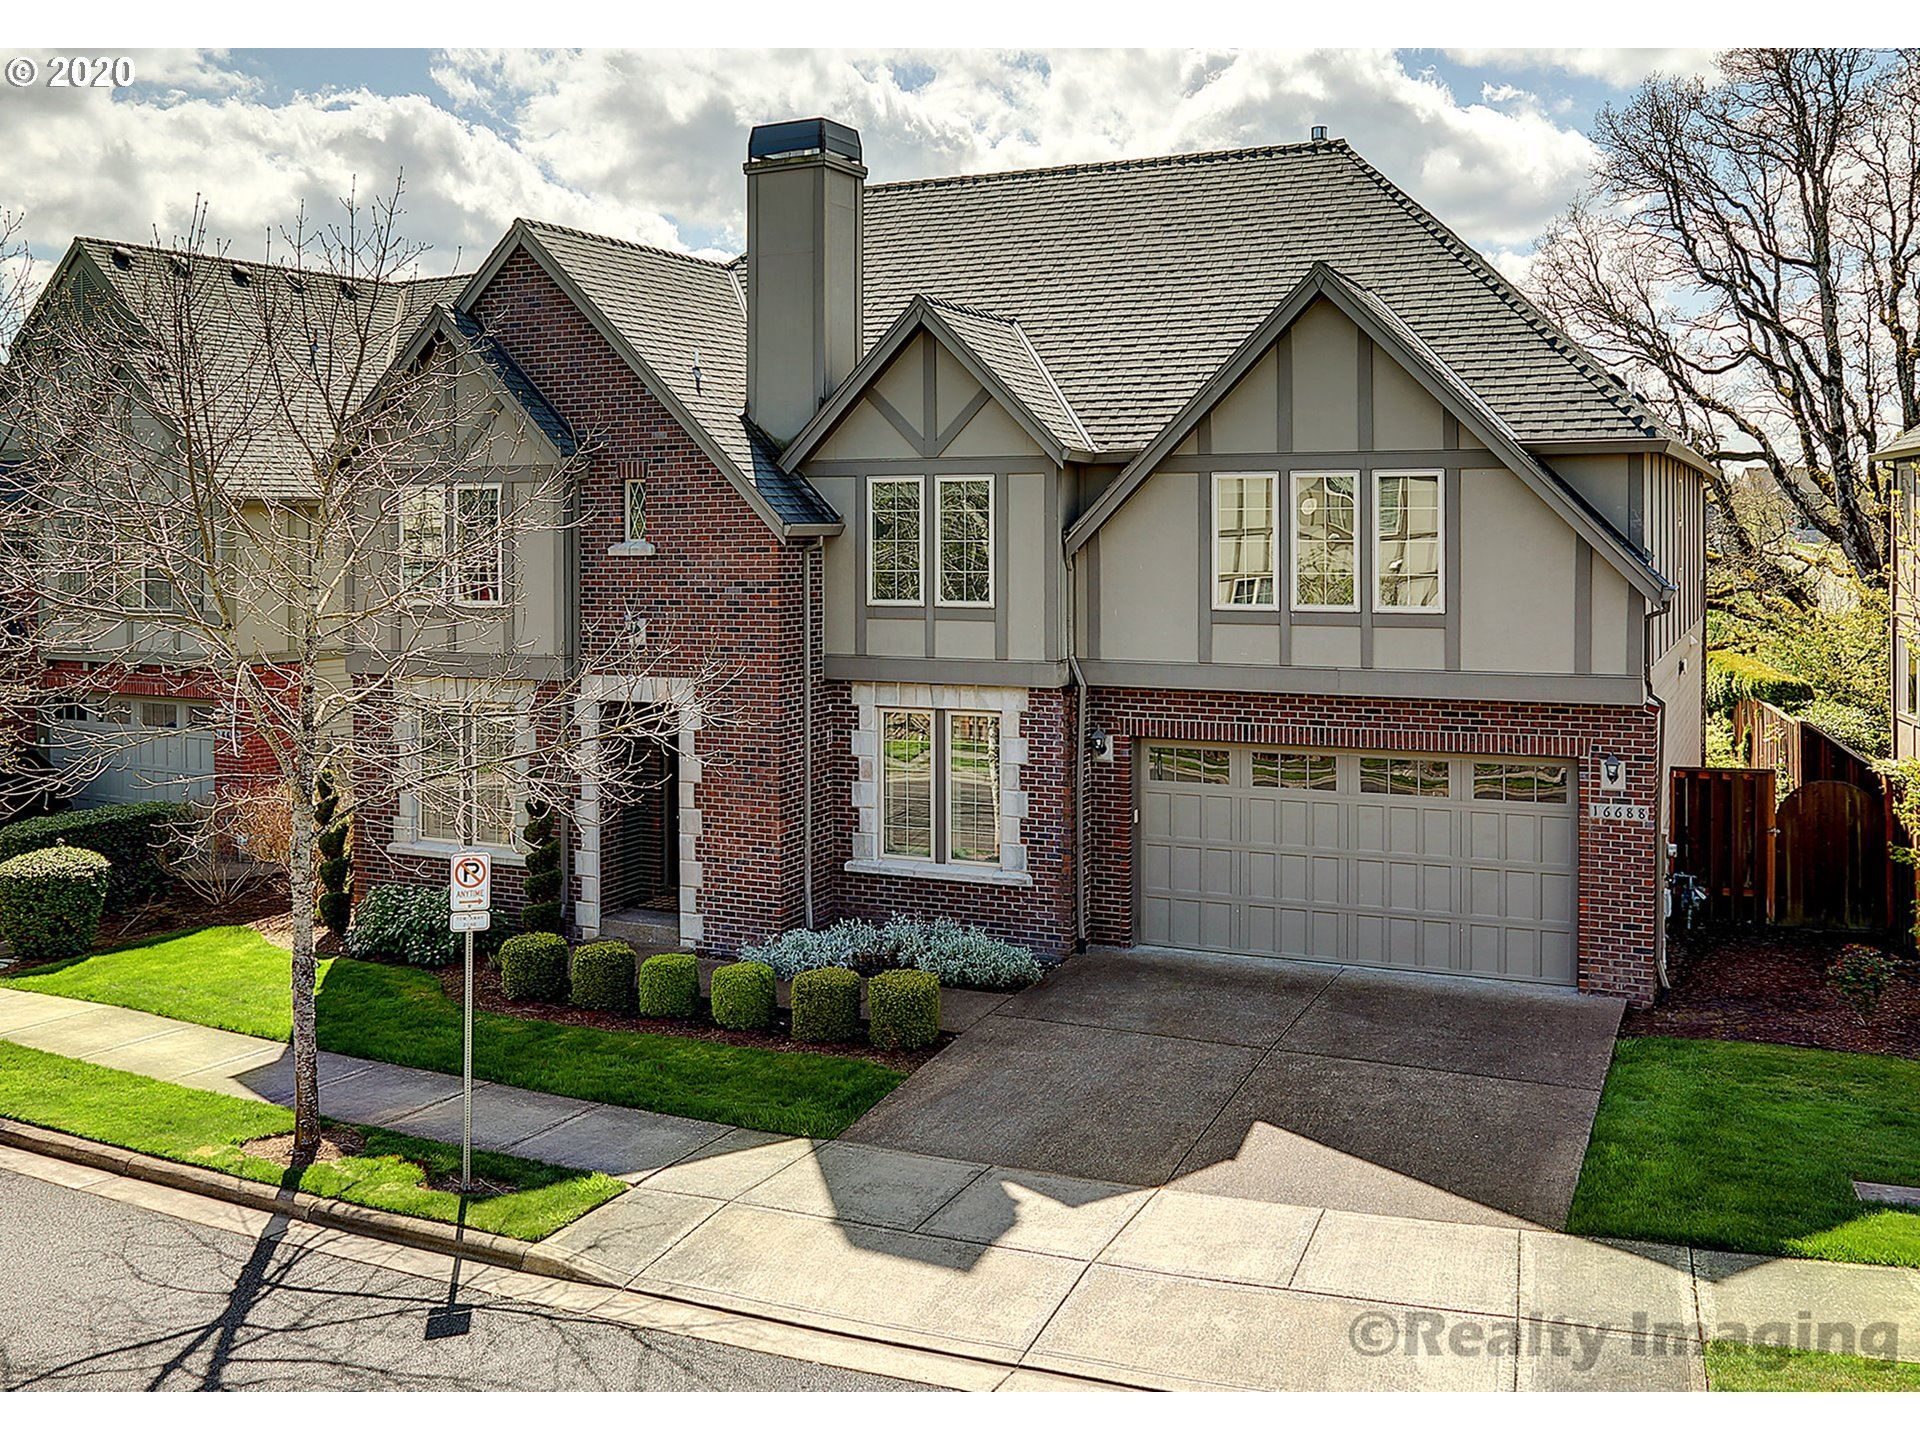 16688 NW VETTER DR, Portland, OR 97229 - MLS#: 20550056